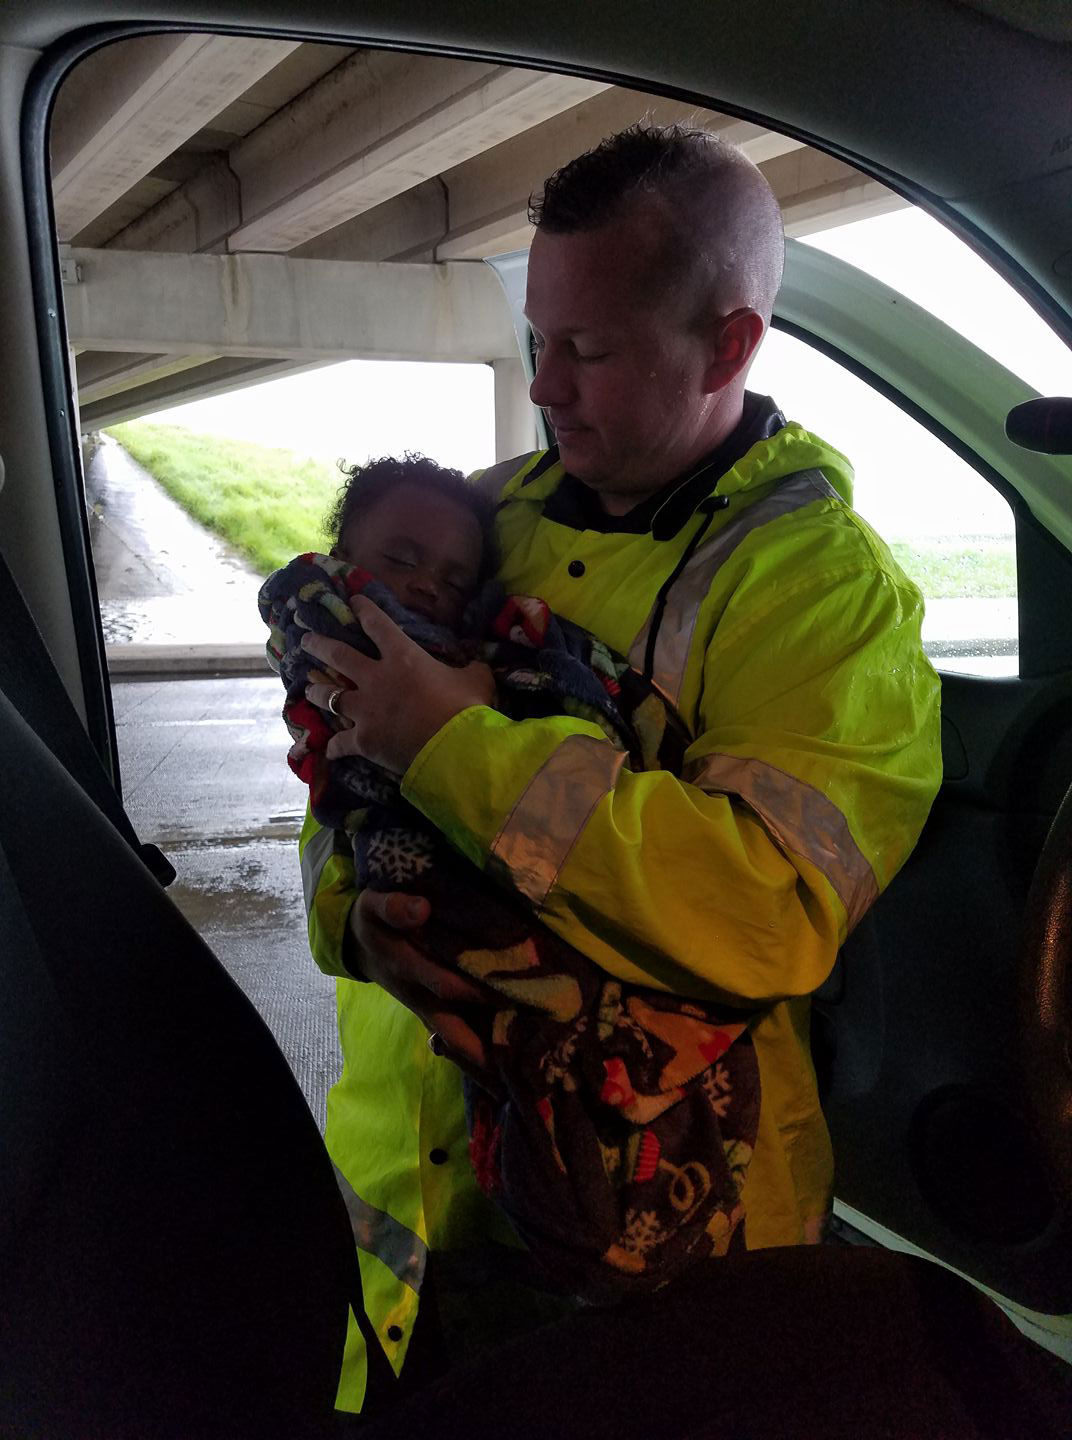 "<div class=""meta image-caption""><div class=""origin-logo origin-image none""><span>none</span></div><span class=""caption-text"">Harris County Constable Pct. 2 Christopher E. Diaz posted this photo searching for the mother of the baby found in Houston. They have since been reunited. (Constable Christopher Diaz)</span></div>"